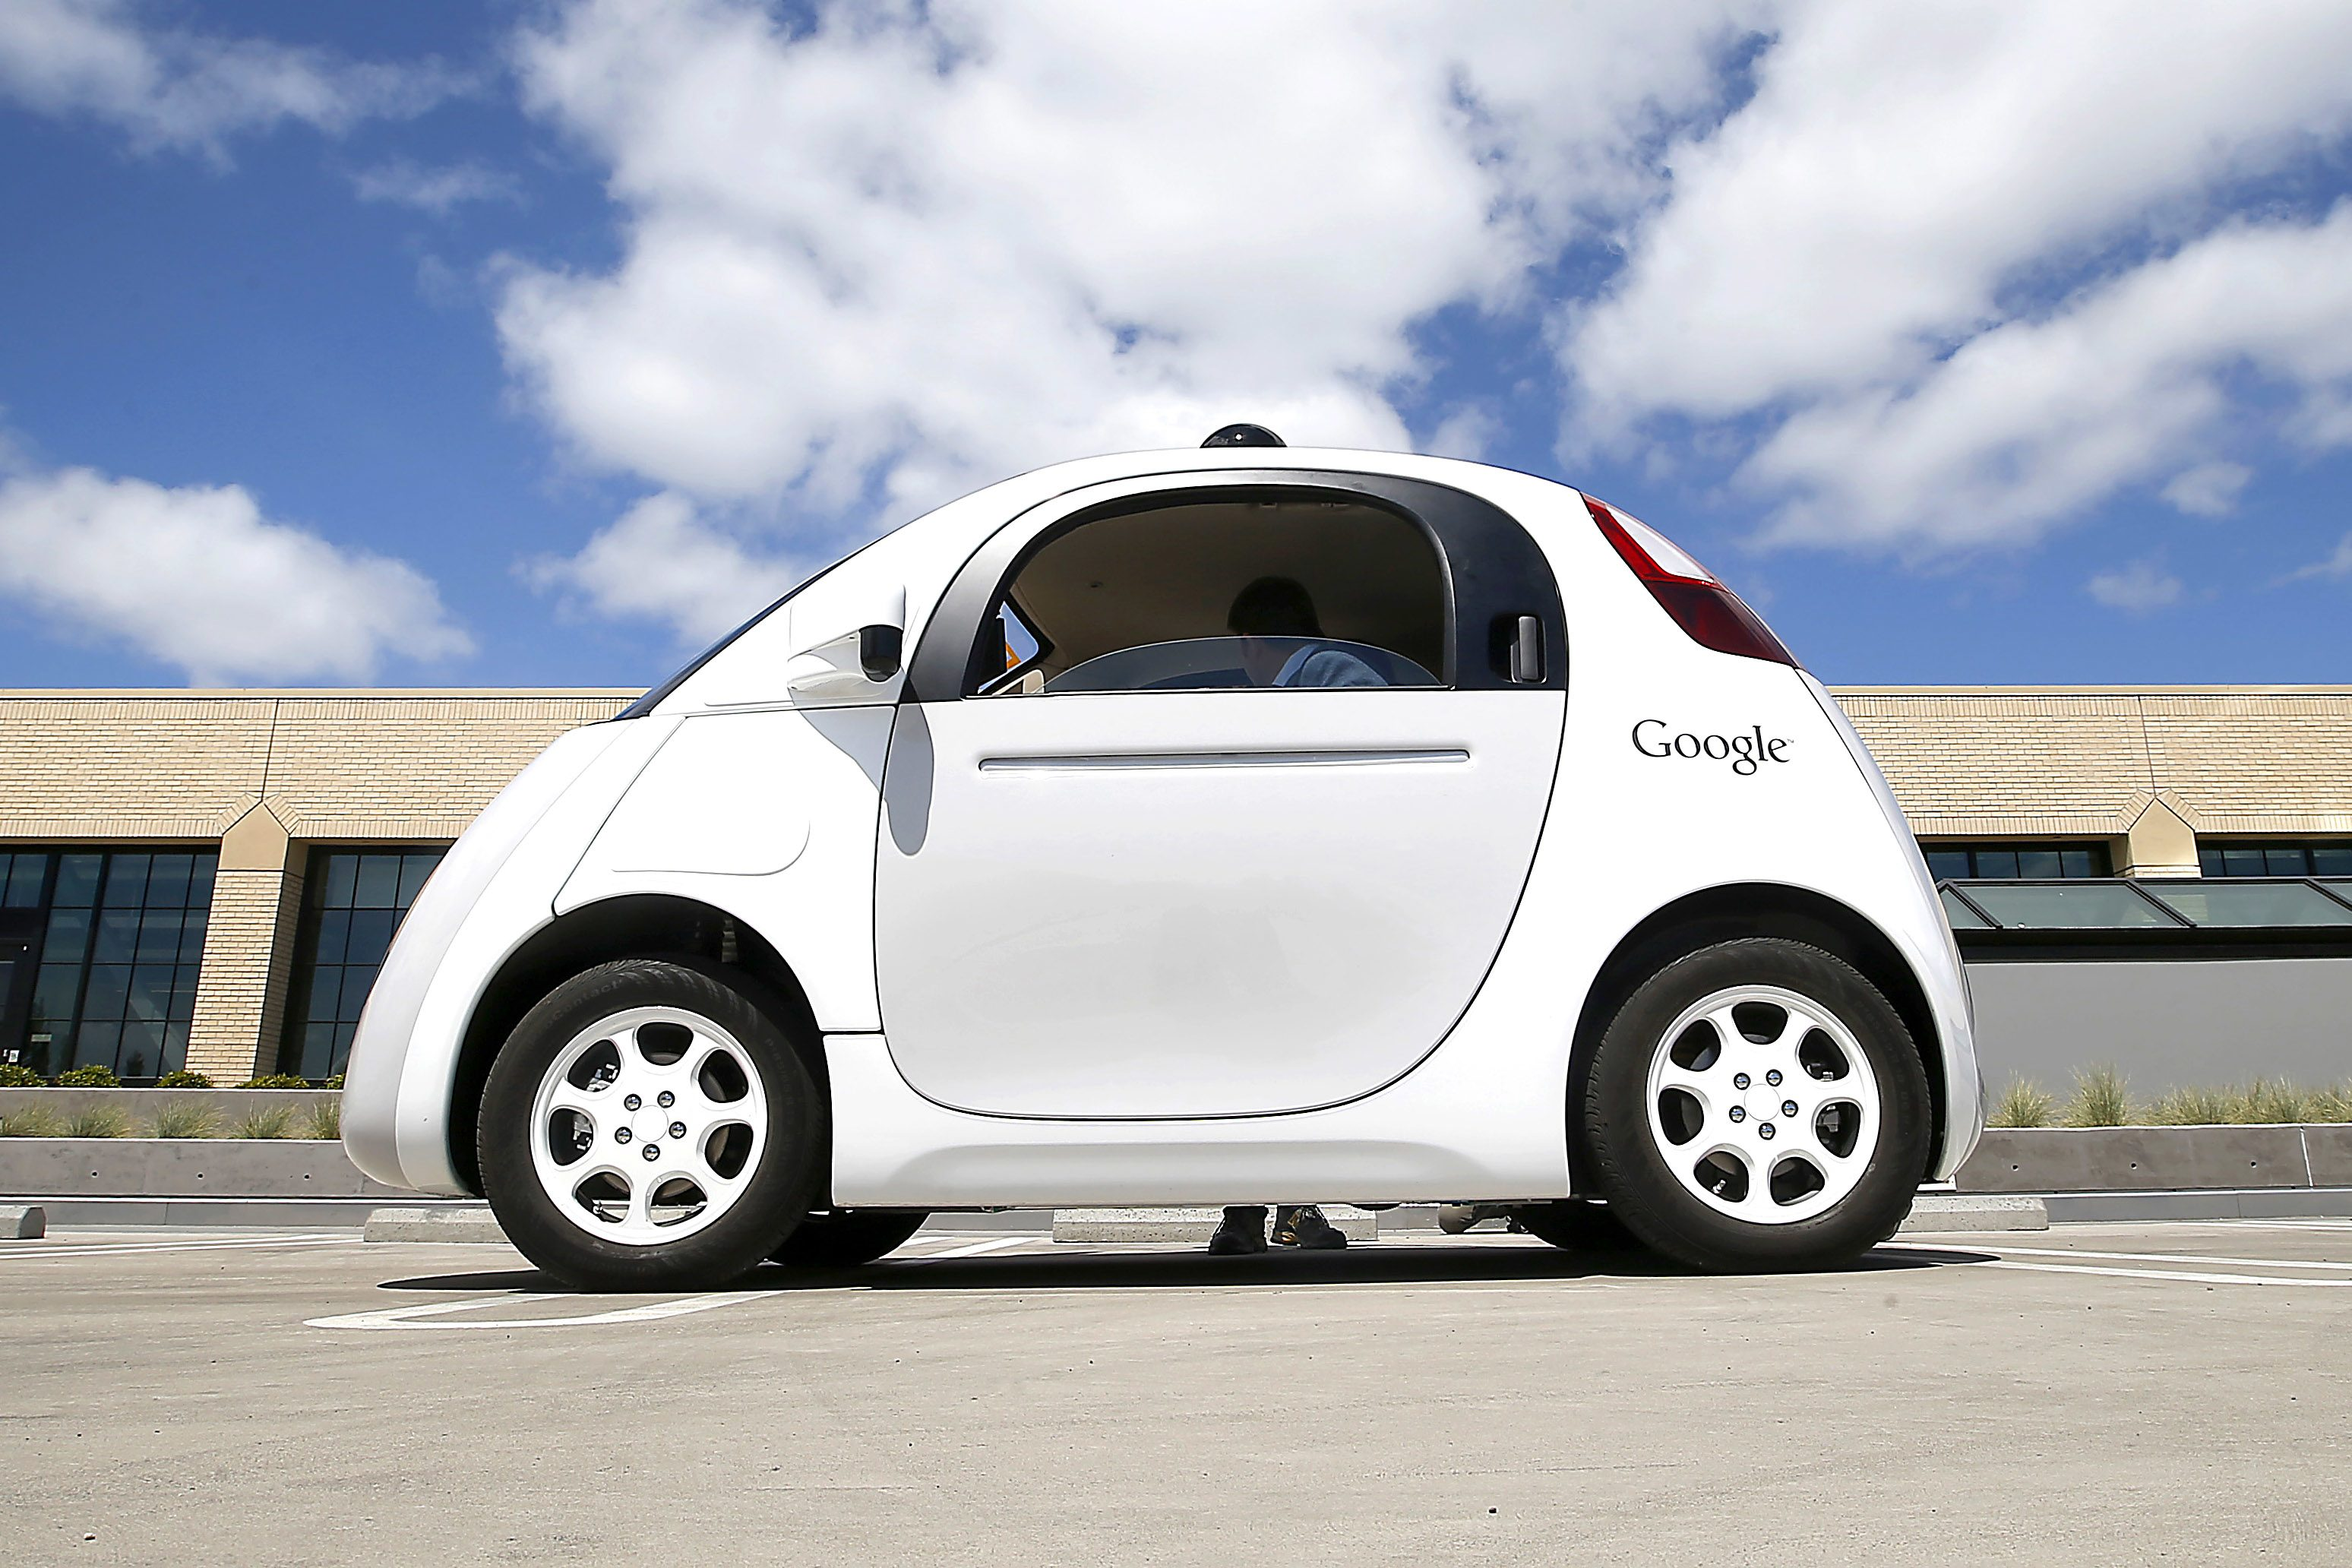 In this May 13, 2015 photo, Google's new self-driving prototype car is presented during a demonstration at the Google campus in Mountain View, Calif.  The car, which needs no gas pedal or steering wheel, will make its debut on public roads this summer. (AP Photo/Tony Avelar)